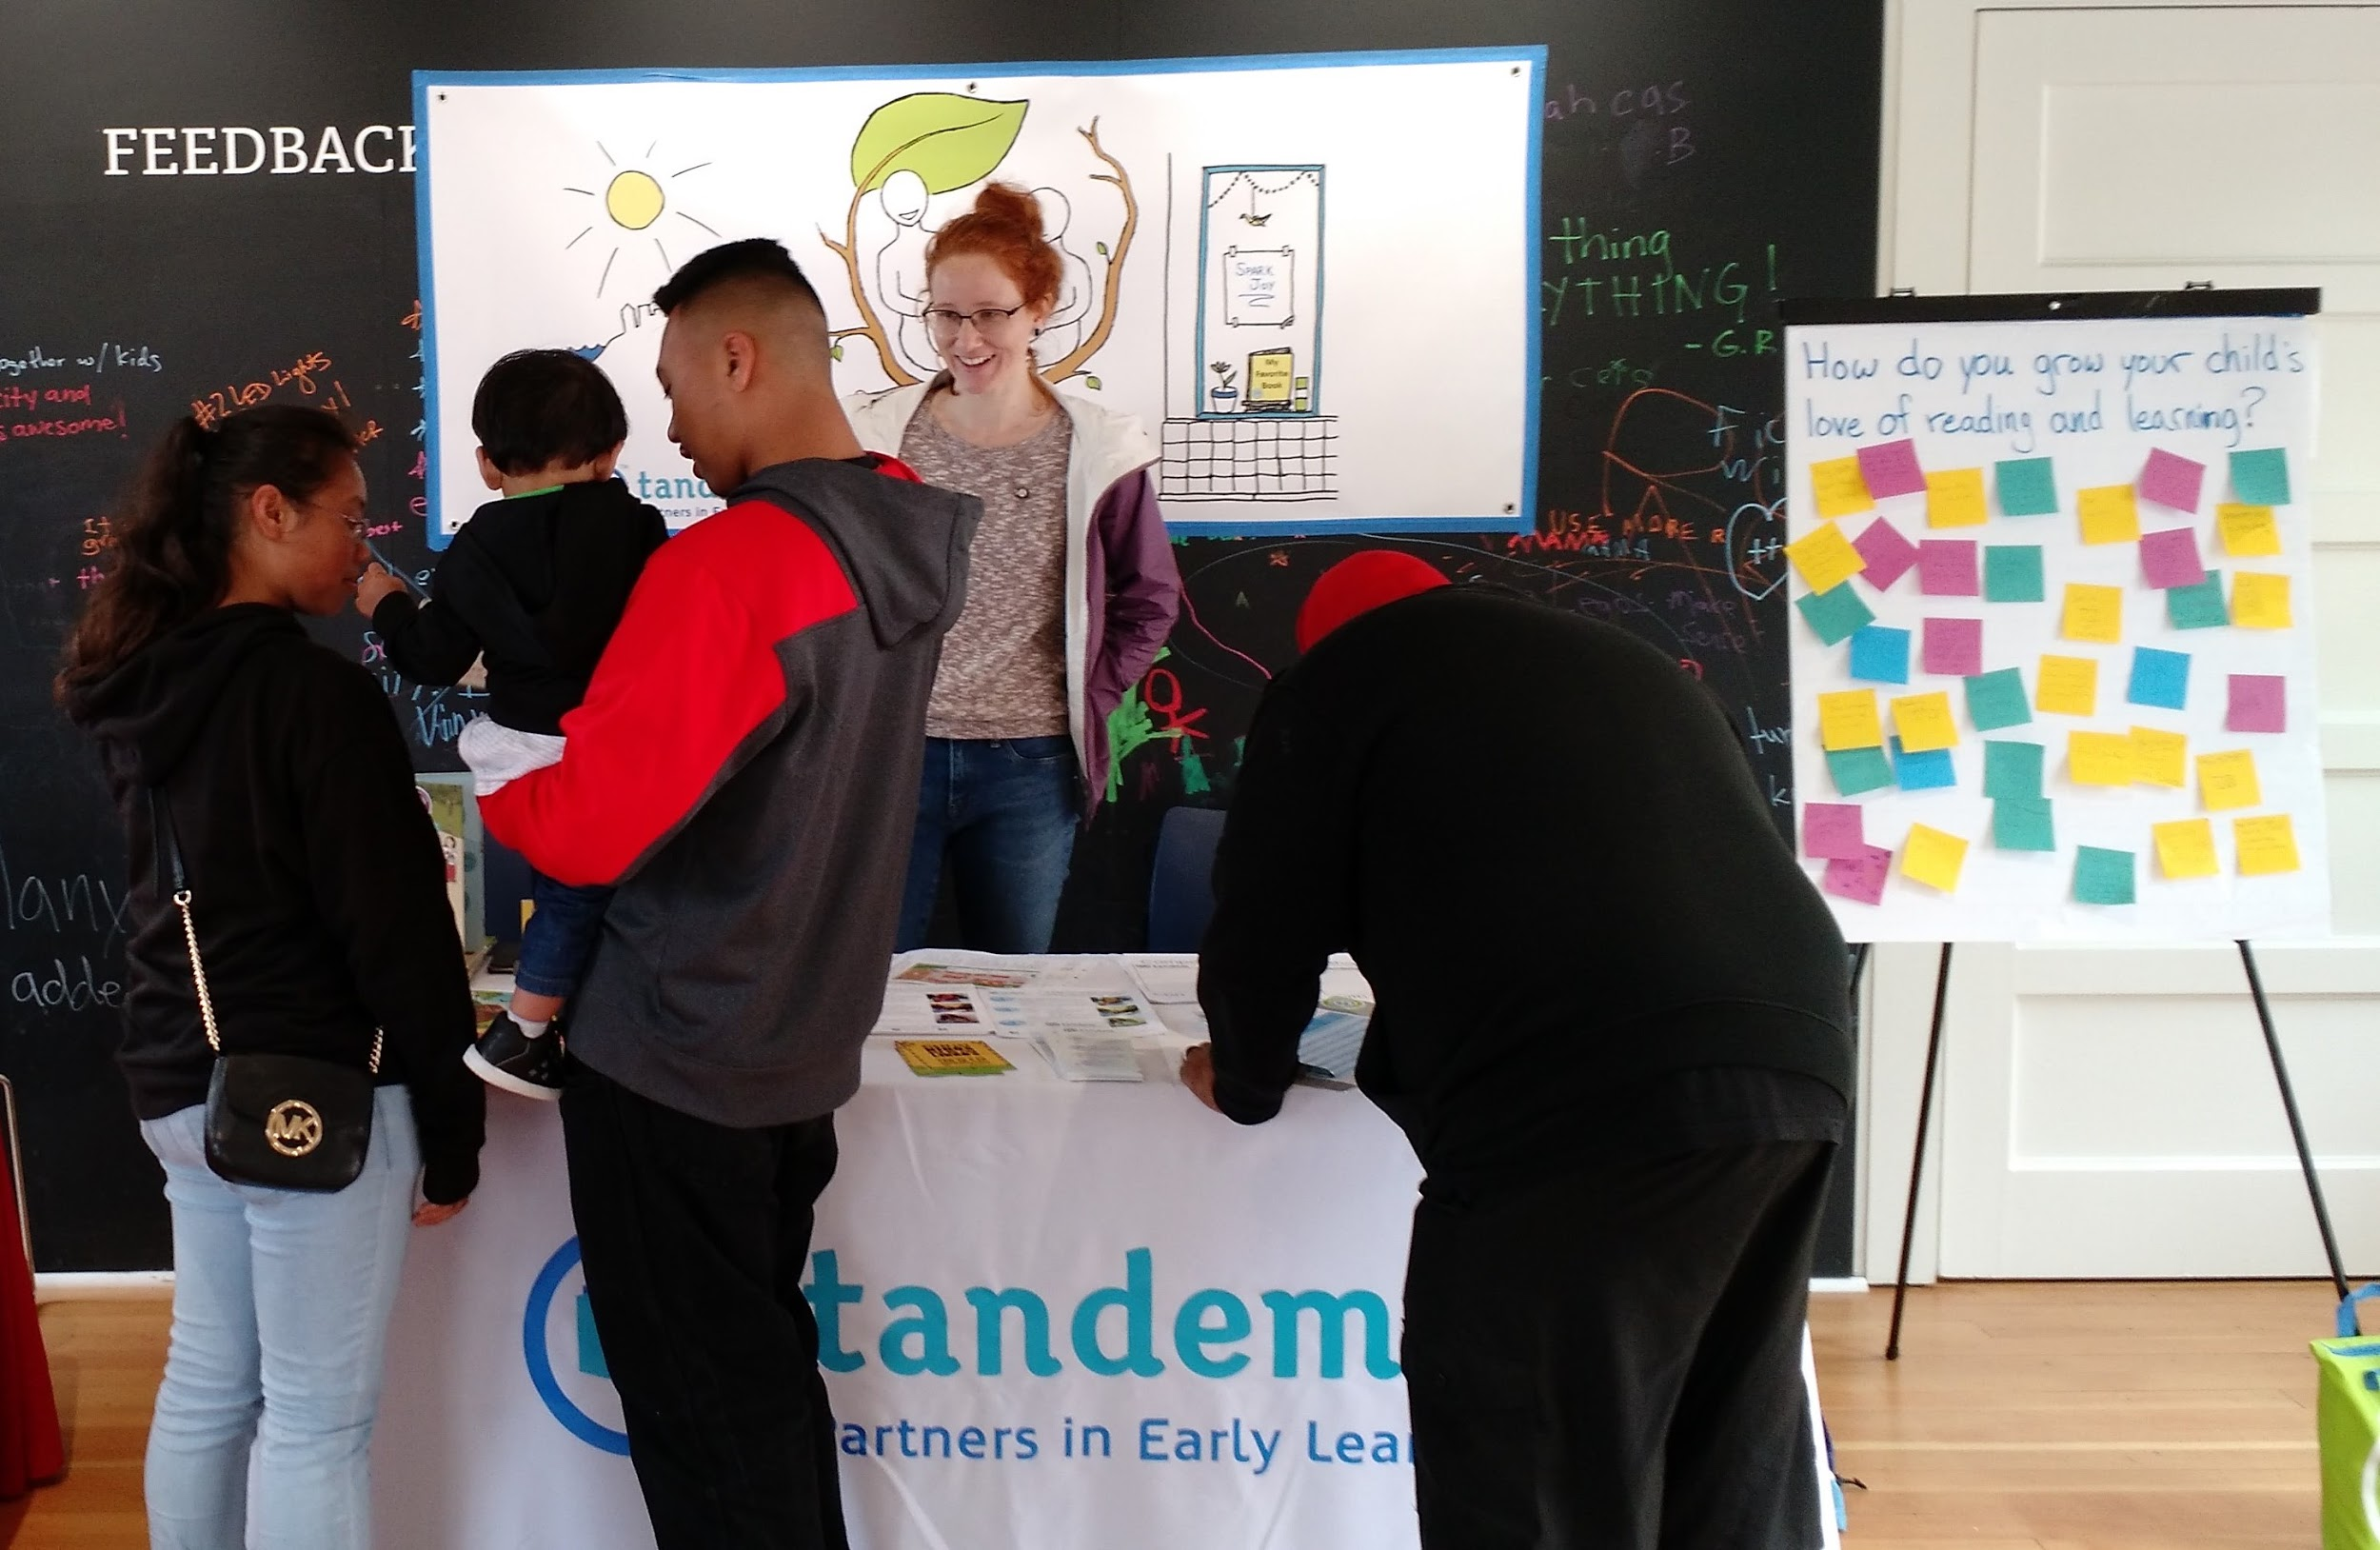 Tandem's Programs team often goes to community events to help raise awareness for our organization and our mission. This way we can engage families that we may not otherwise reach through preschools or daycare sites.